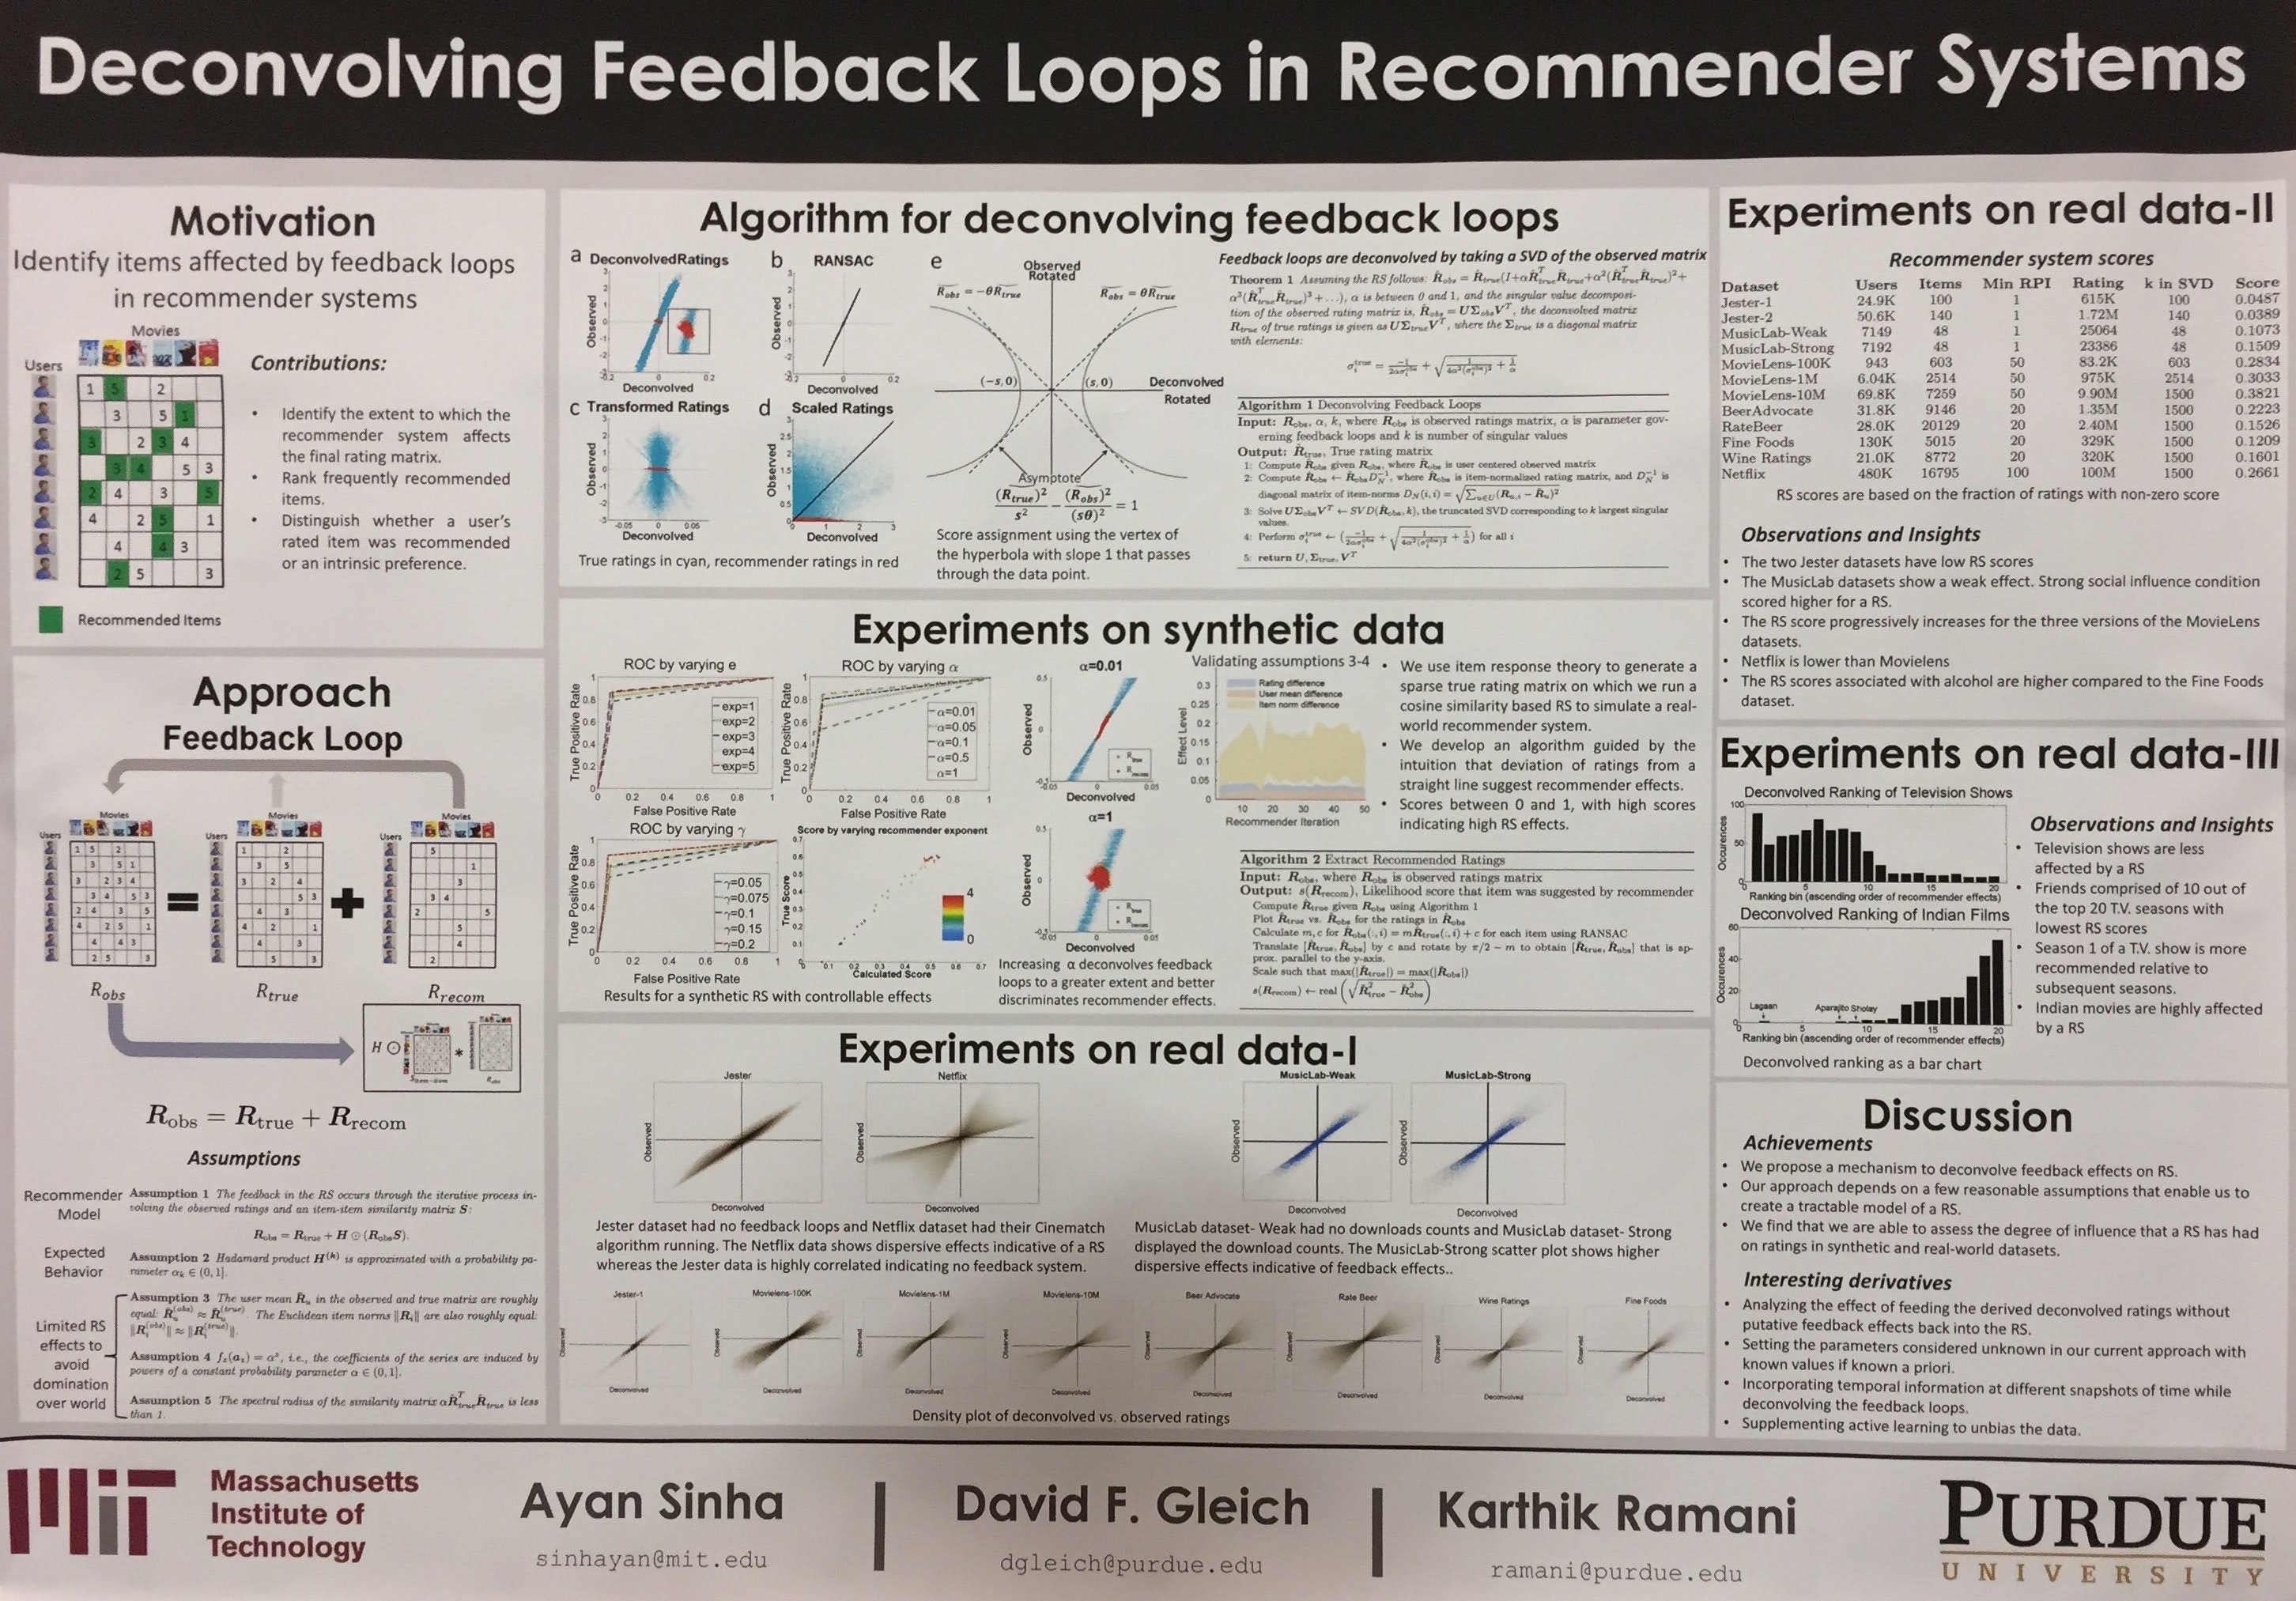 Sinha_Deconvolving_Feedback_Loops_in_Recommender_Systems.jpg